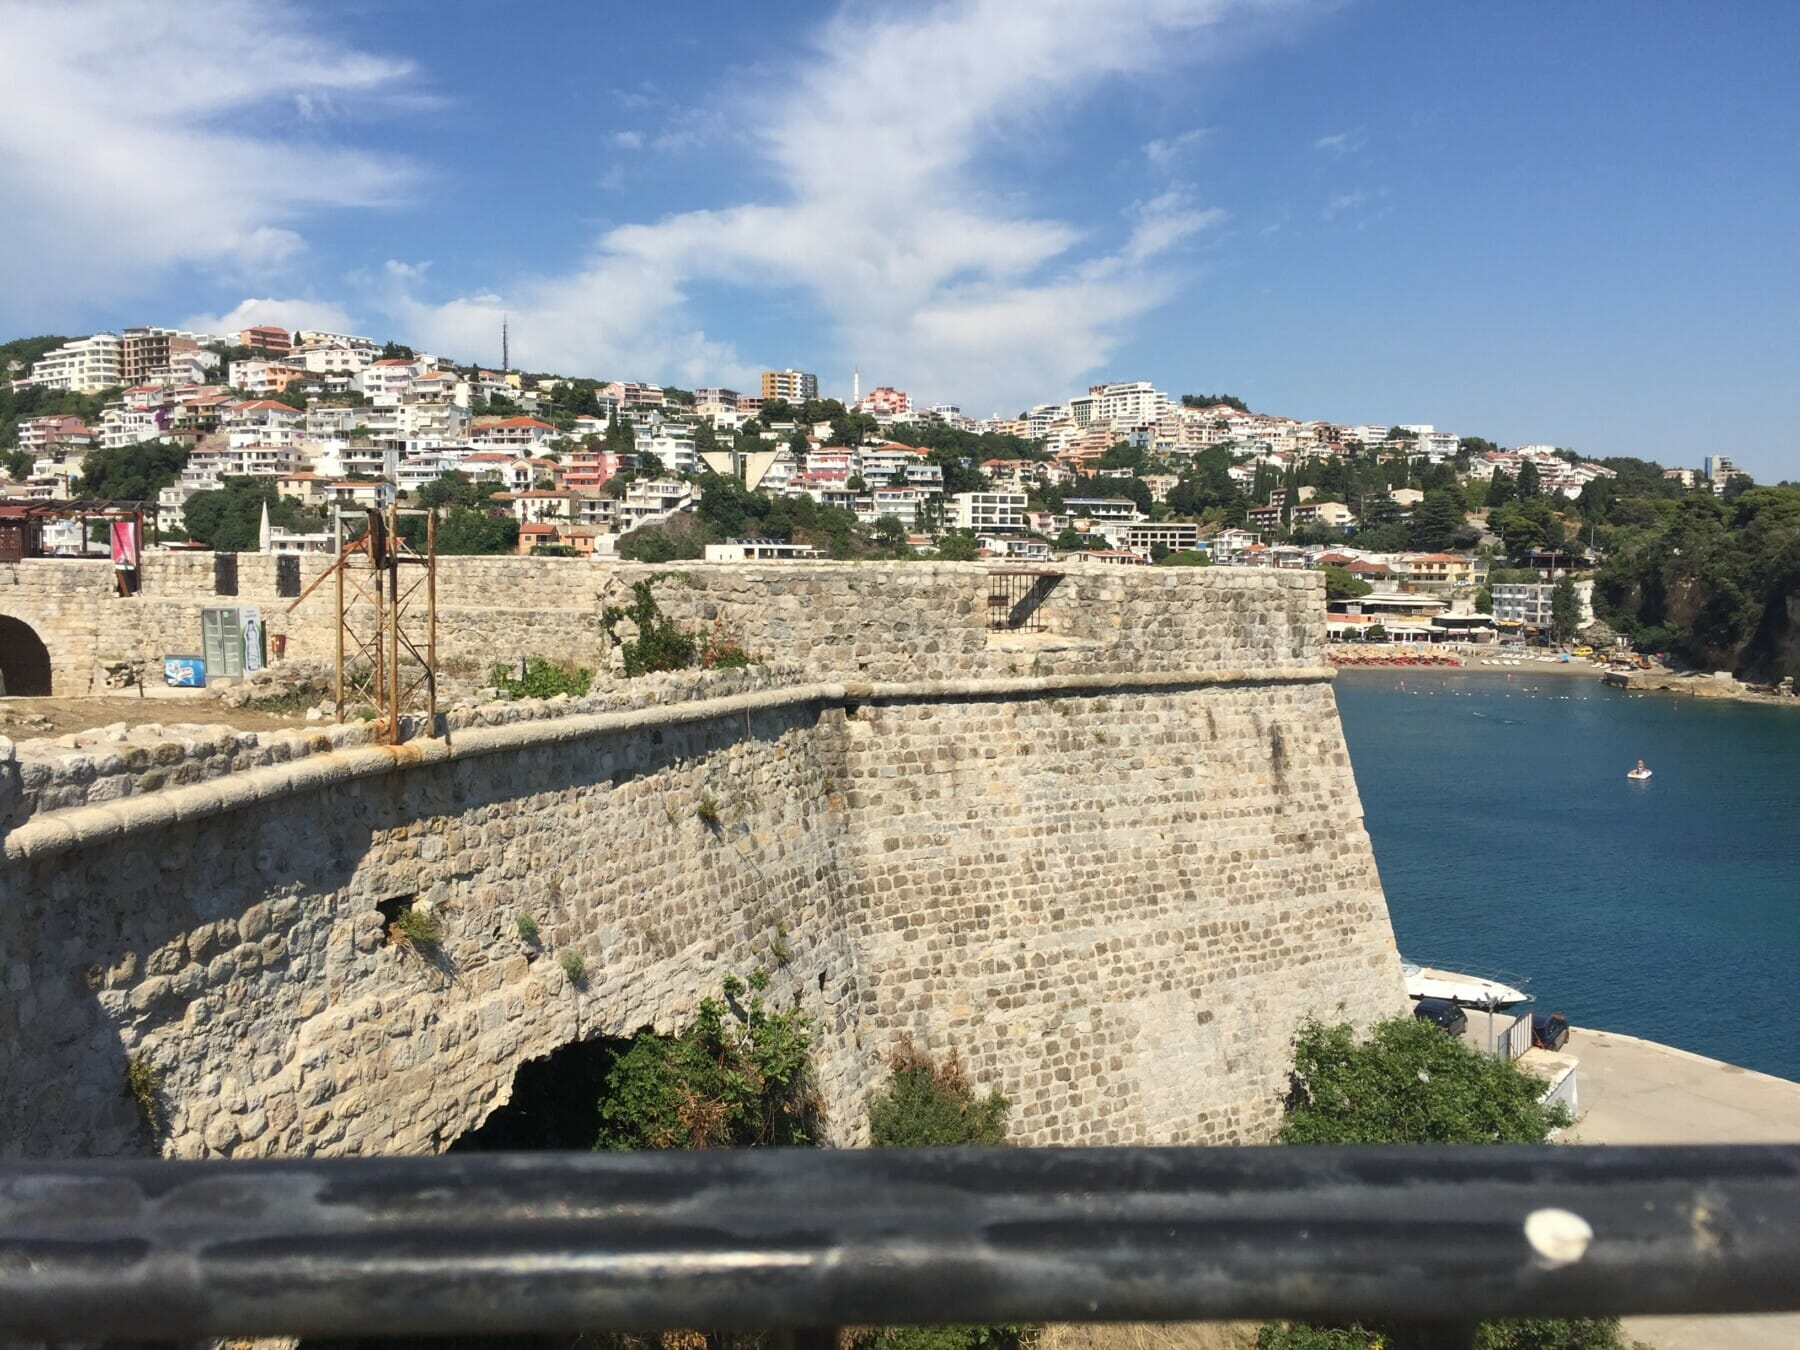 View of the walls of the old town of Ulcinj